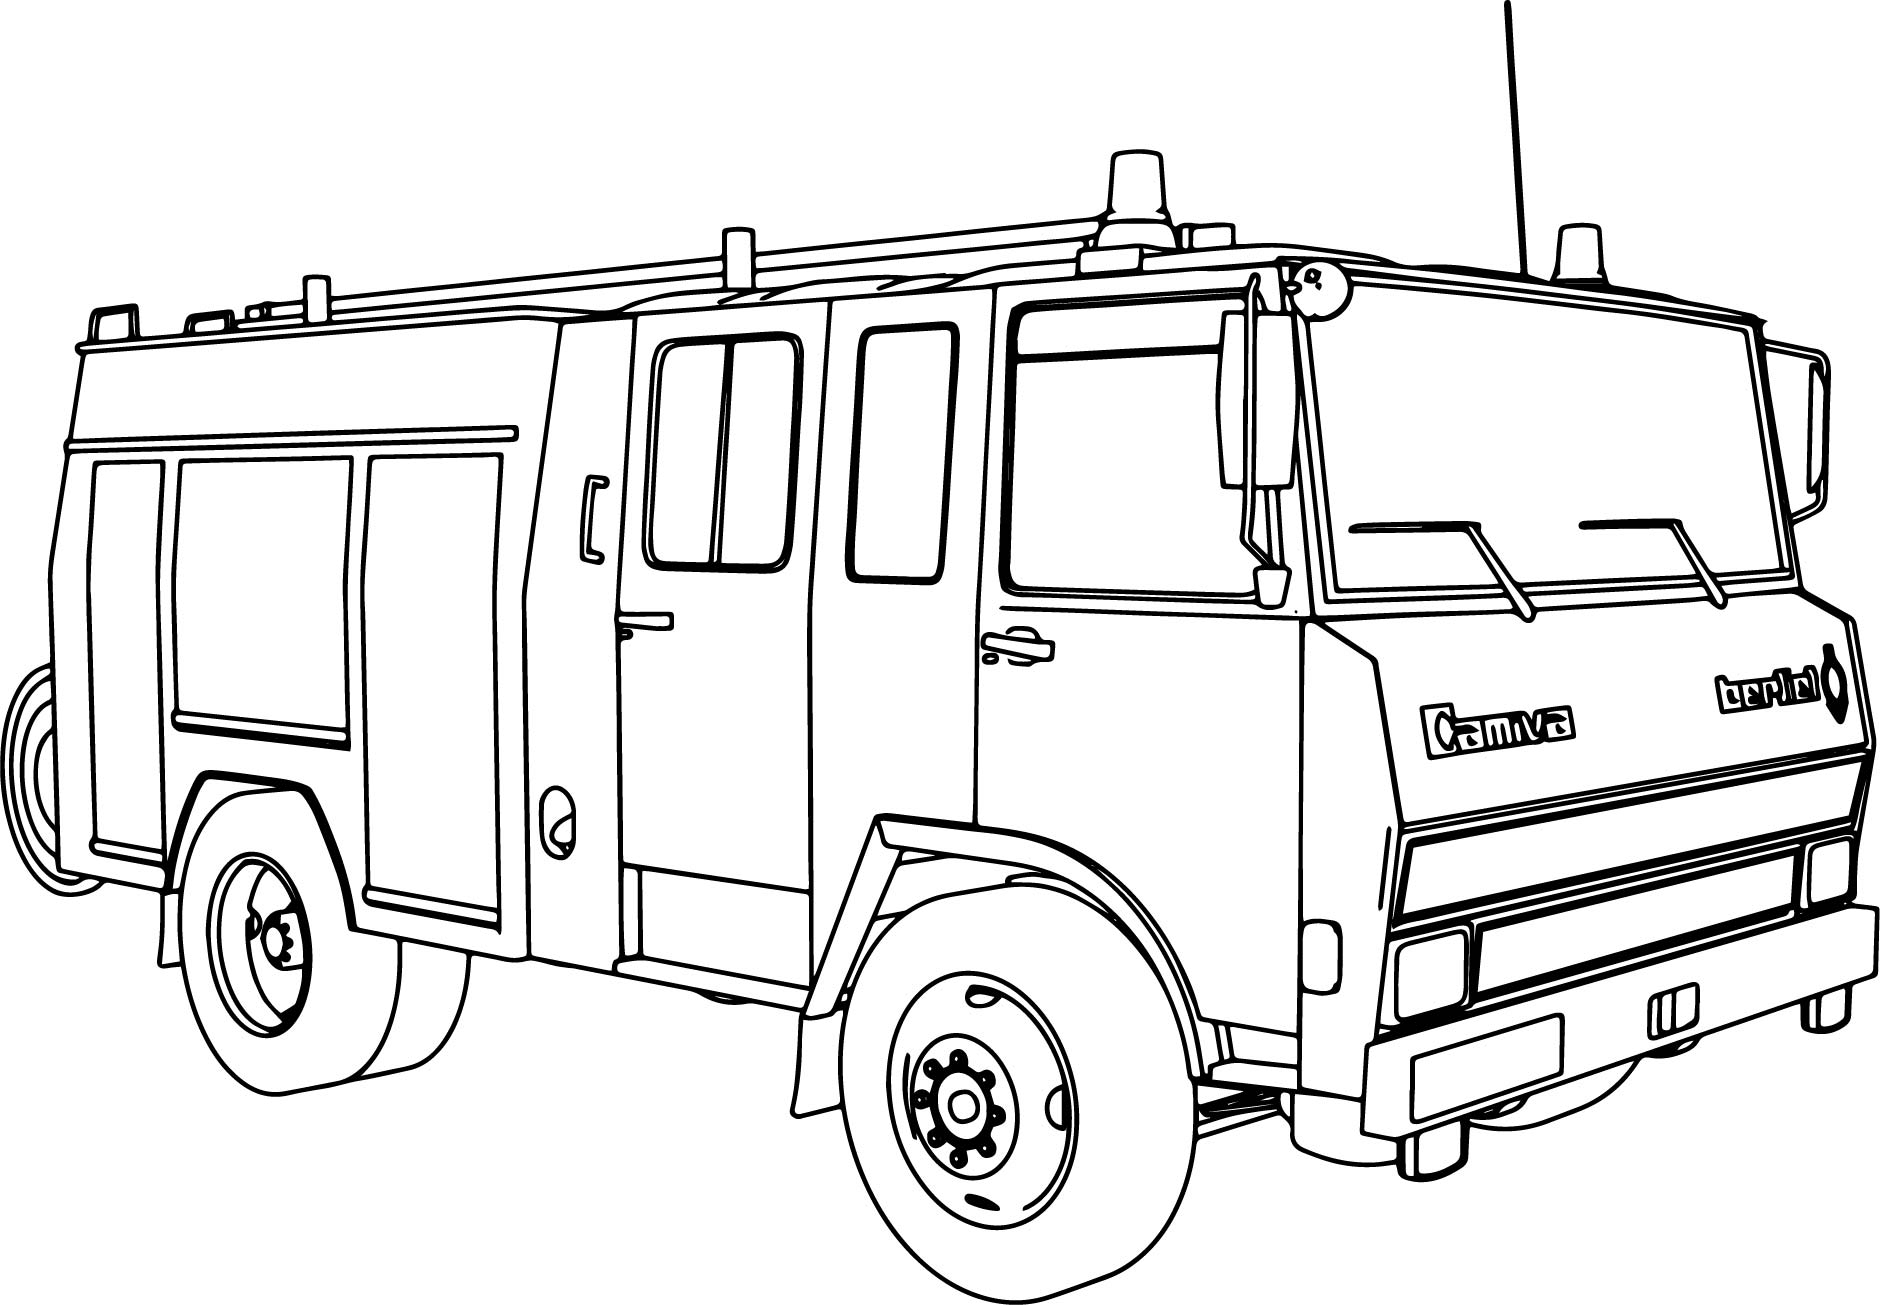 Emergency Vehicle Coloring Pages At Getdrawings Com Free For